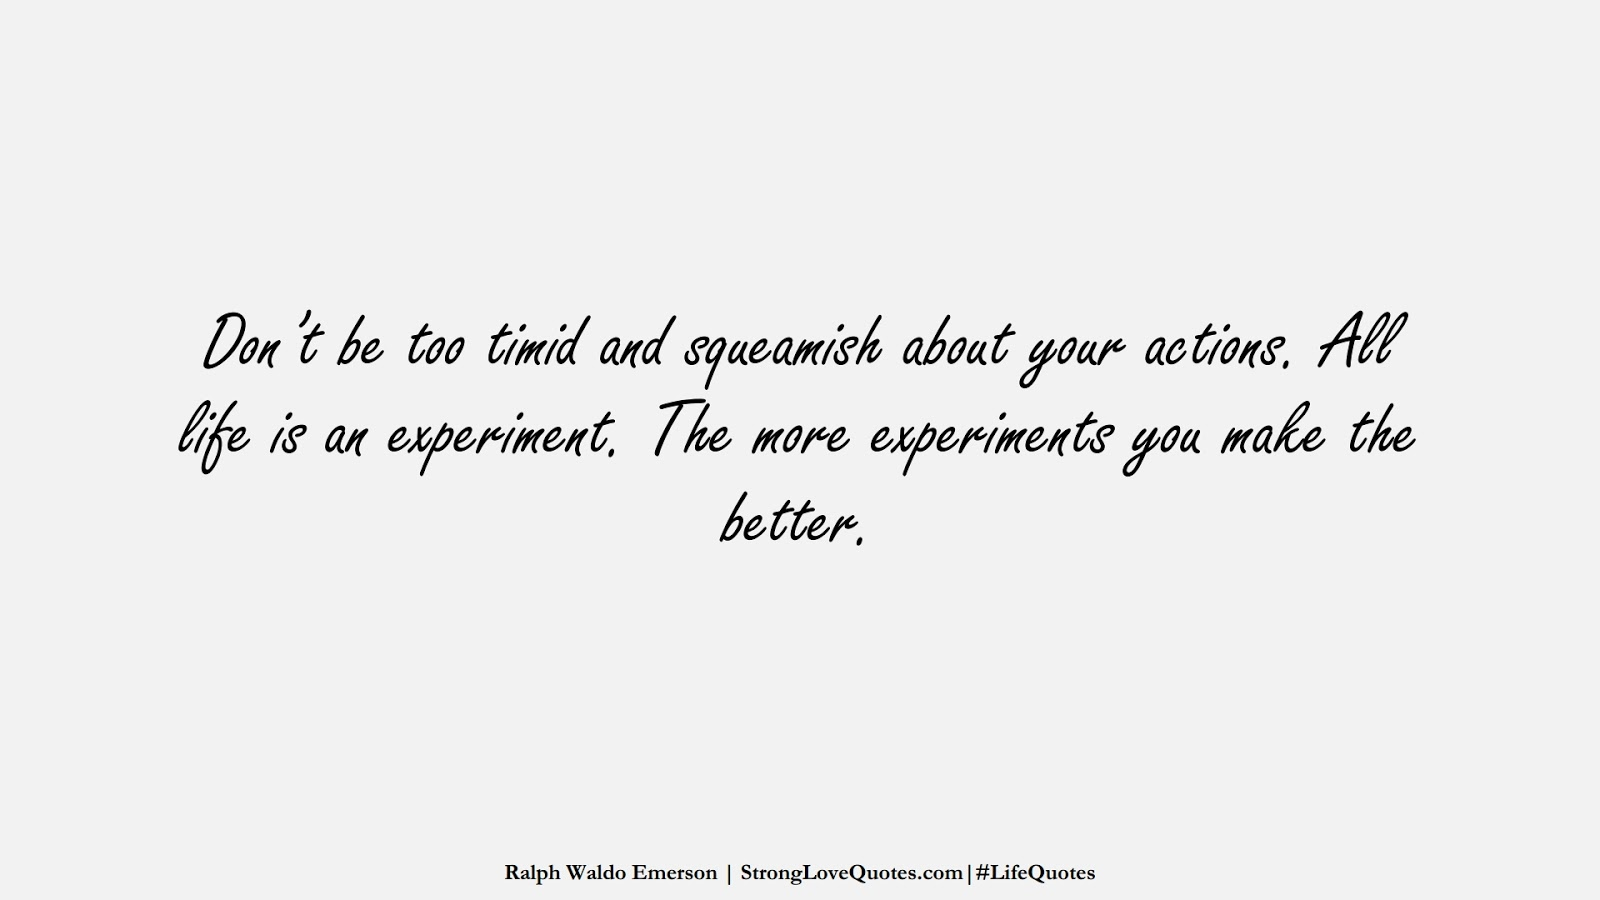 Don't be too timid and squeamish about your actions. All life is an experiment. The more experiments you make the better. (Ralph Waldo Emerson);  #LifeQuotes